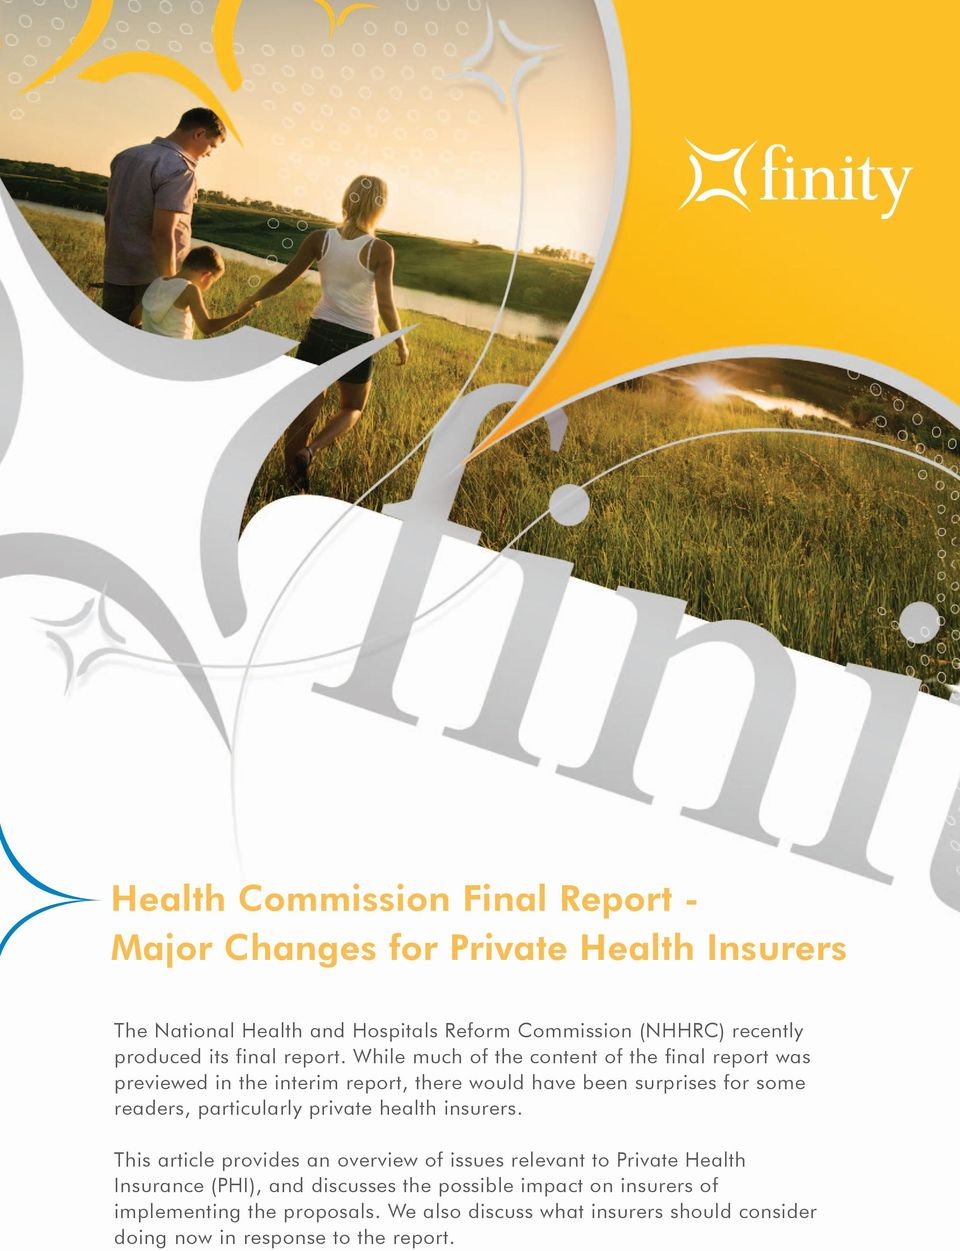 While much of the content of the final report was previewed in the interim report, there would have been surprises for some readers, particularly